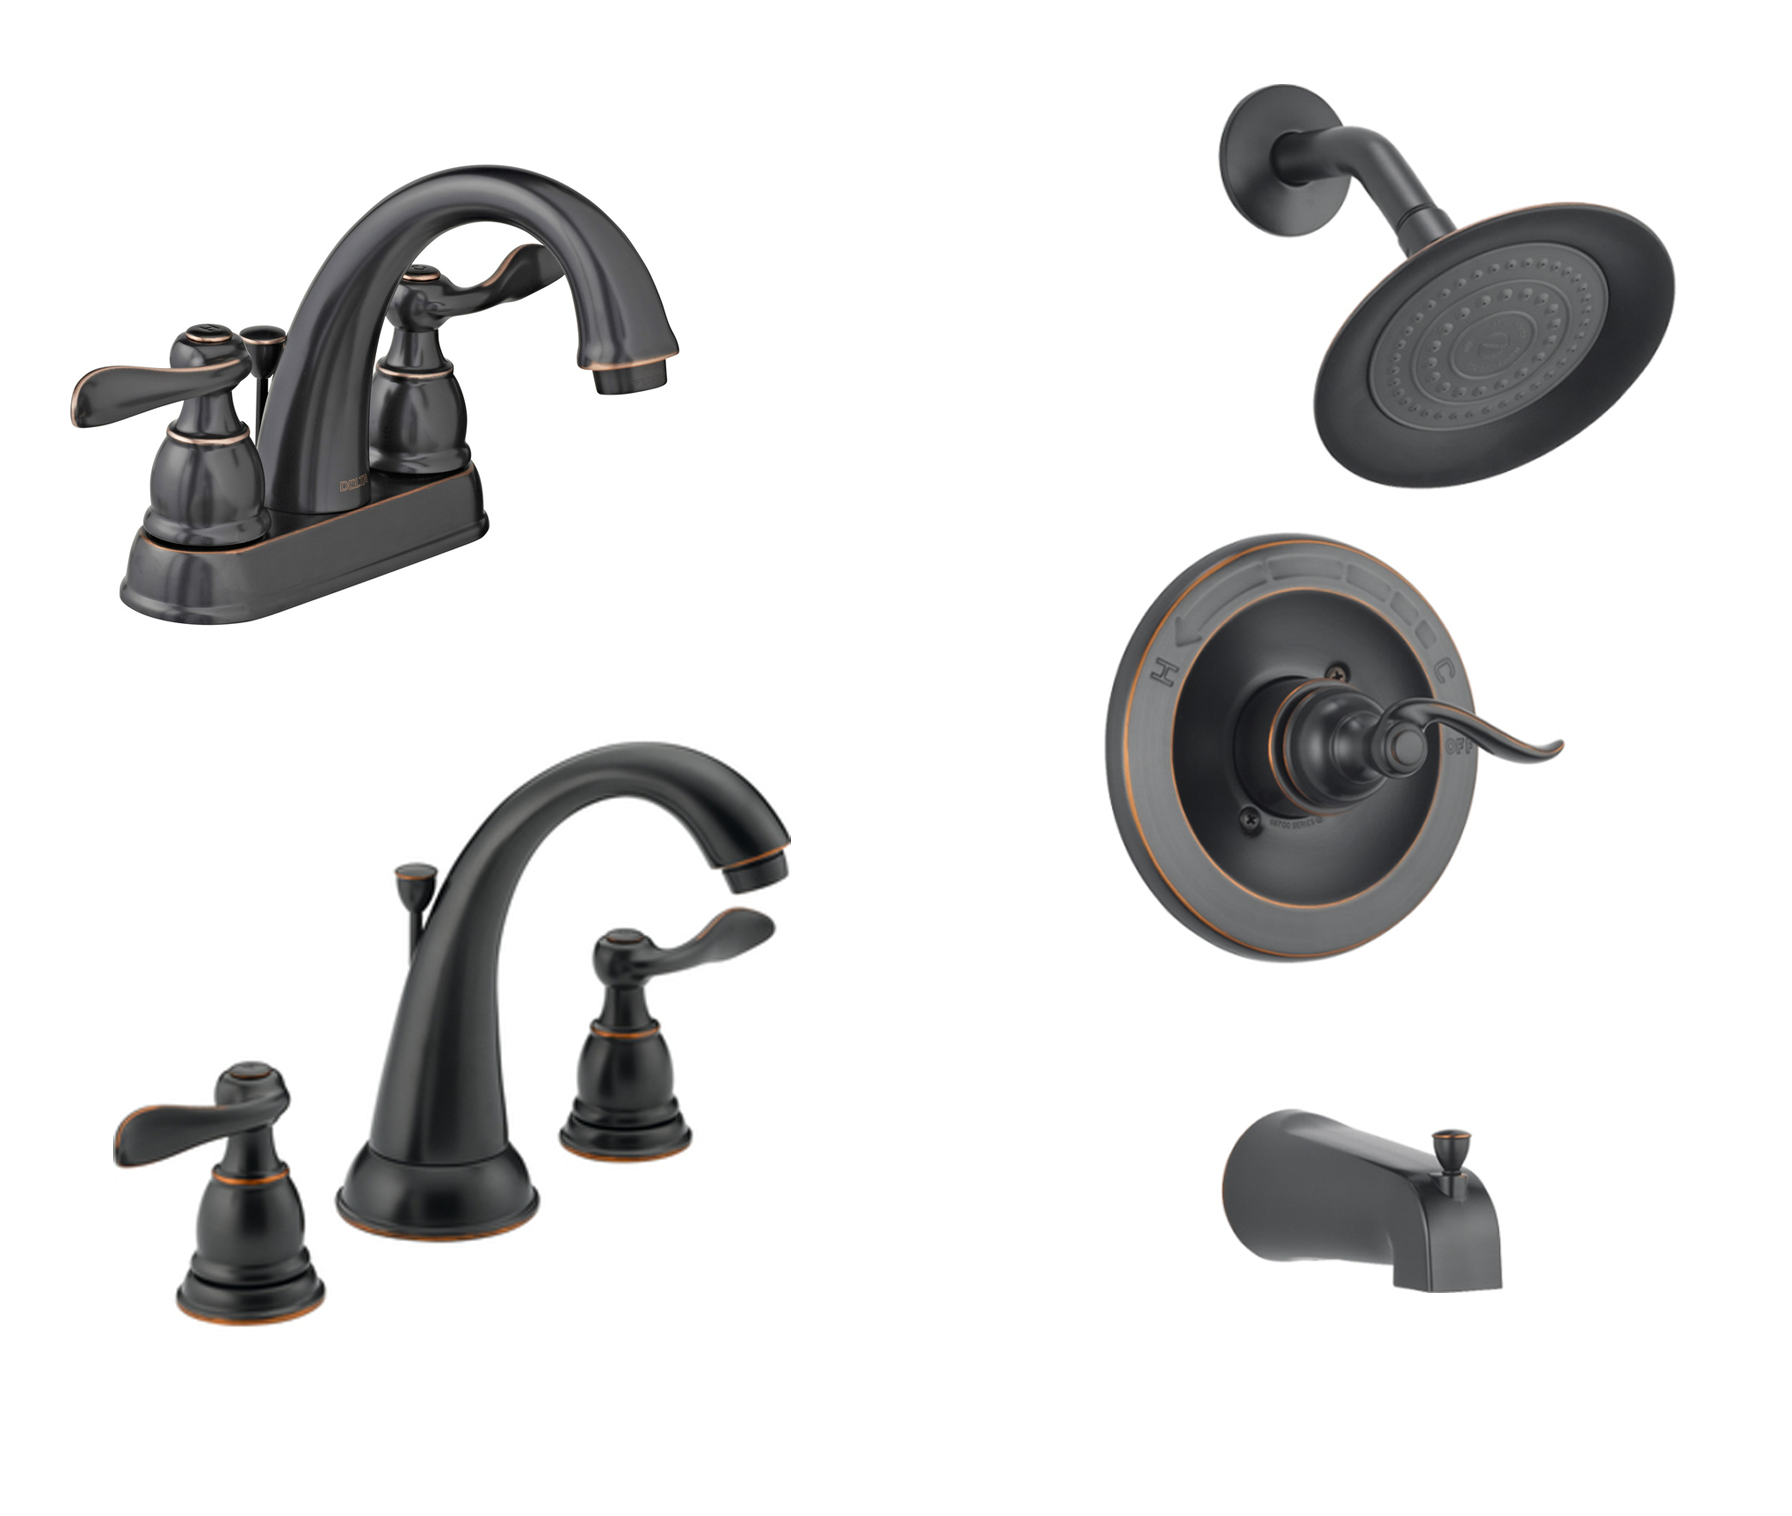 Delta Oil Rubbed Bronze Kitchen Faucet Tiles For Bathroom Collection Windemere